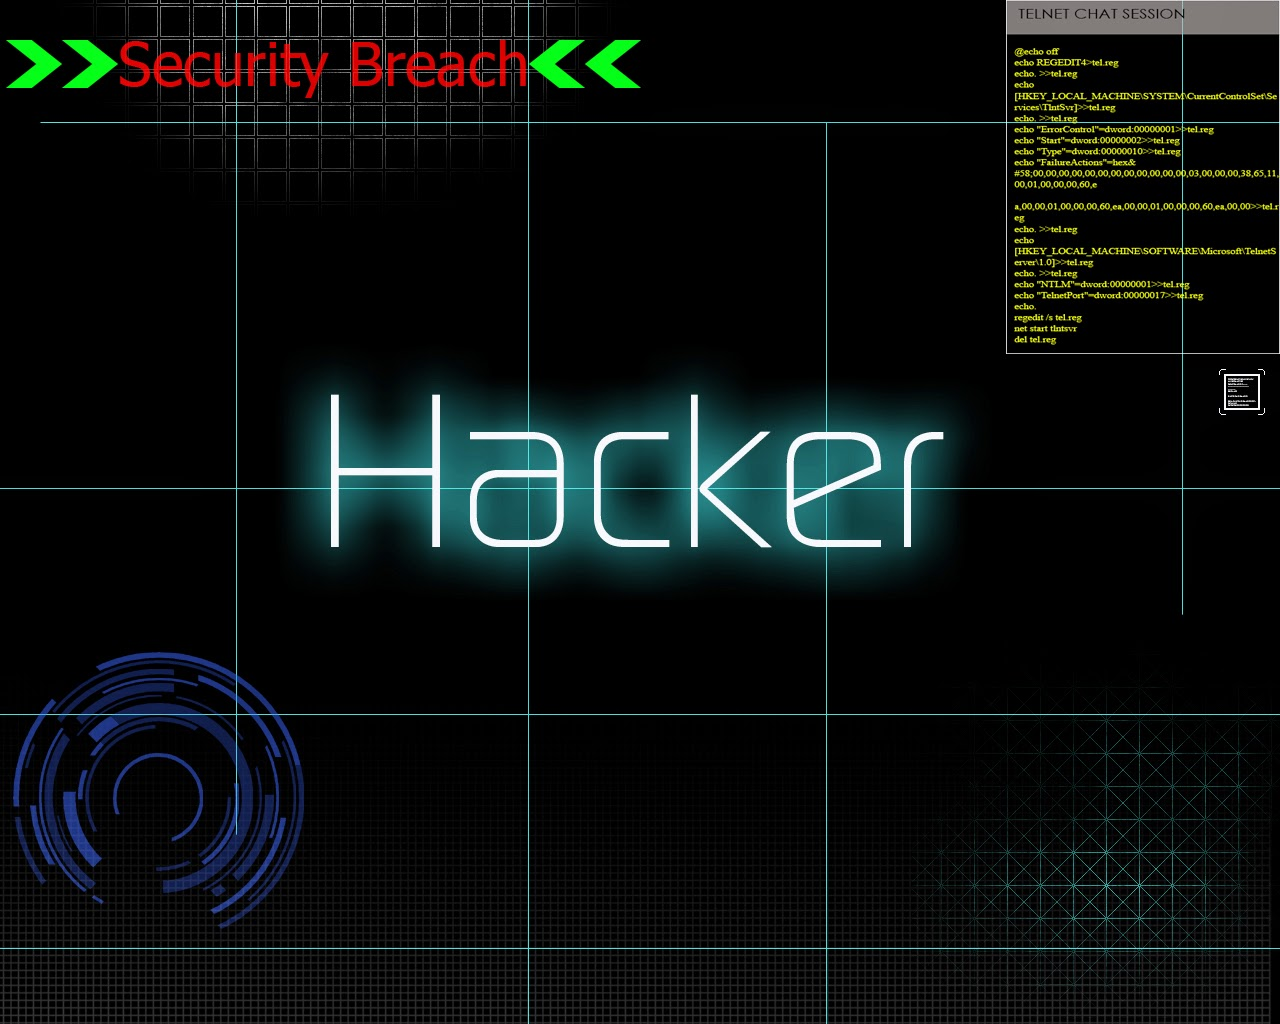 1000 hacking tutorials leaked